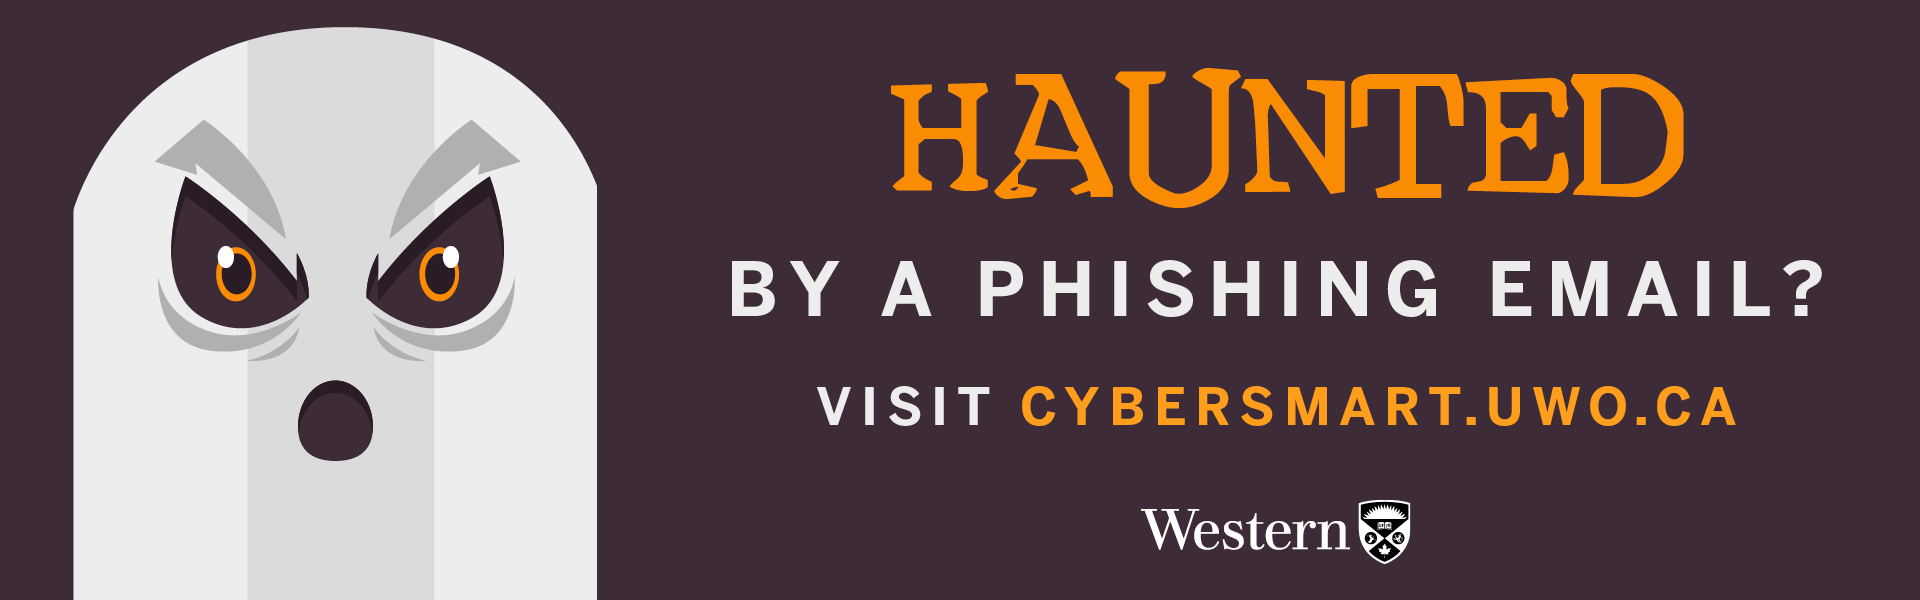 Click to learn about cyber safety, phishing emails.